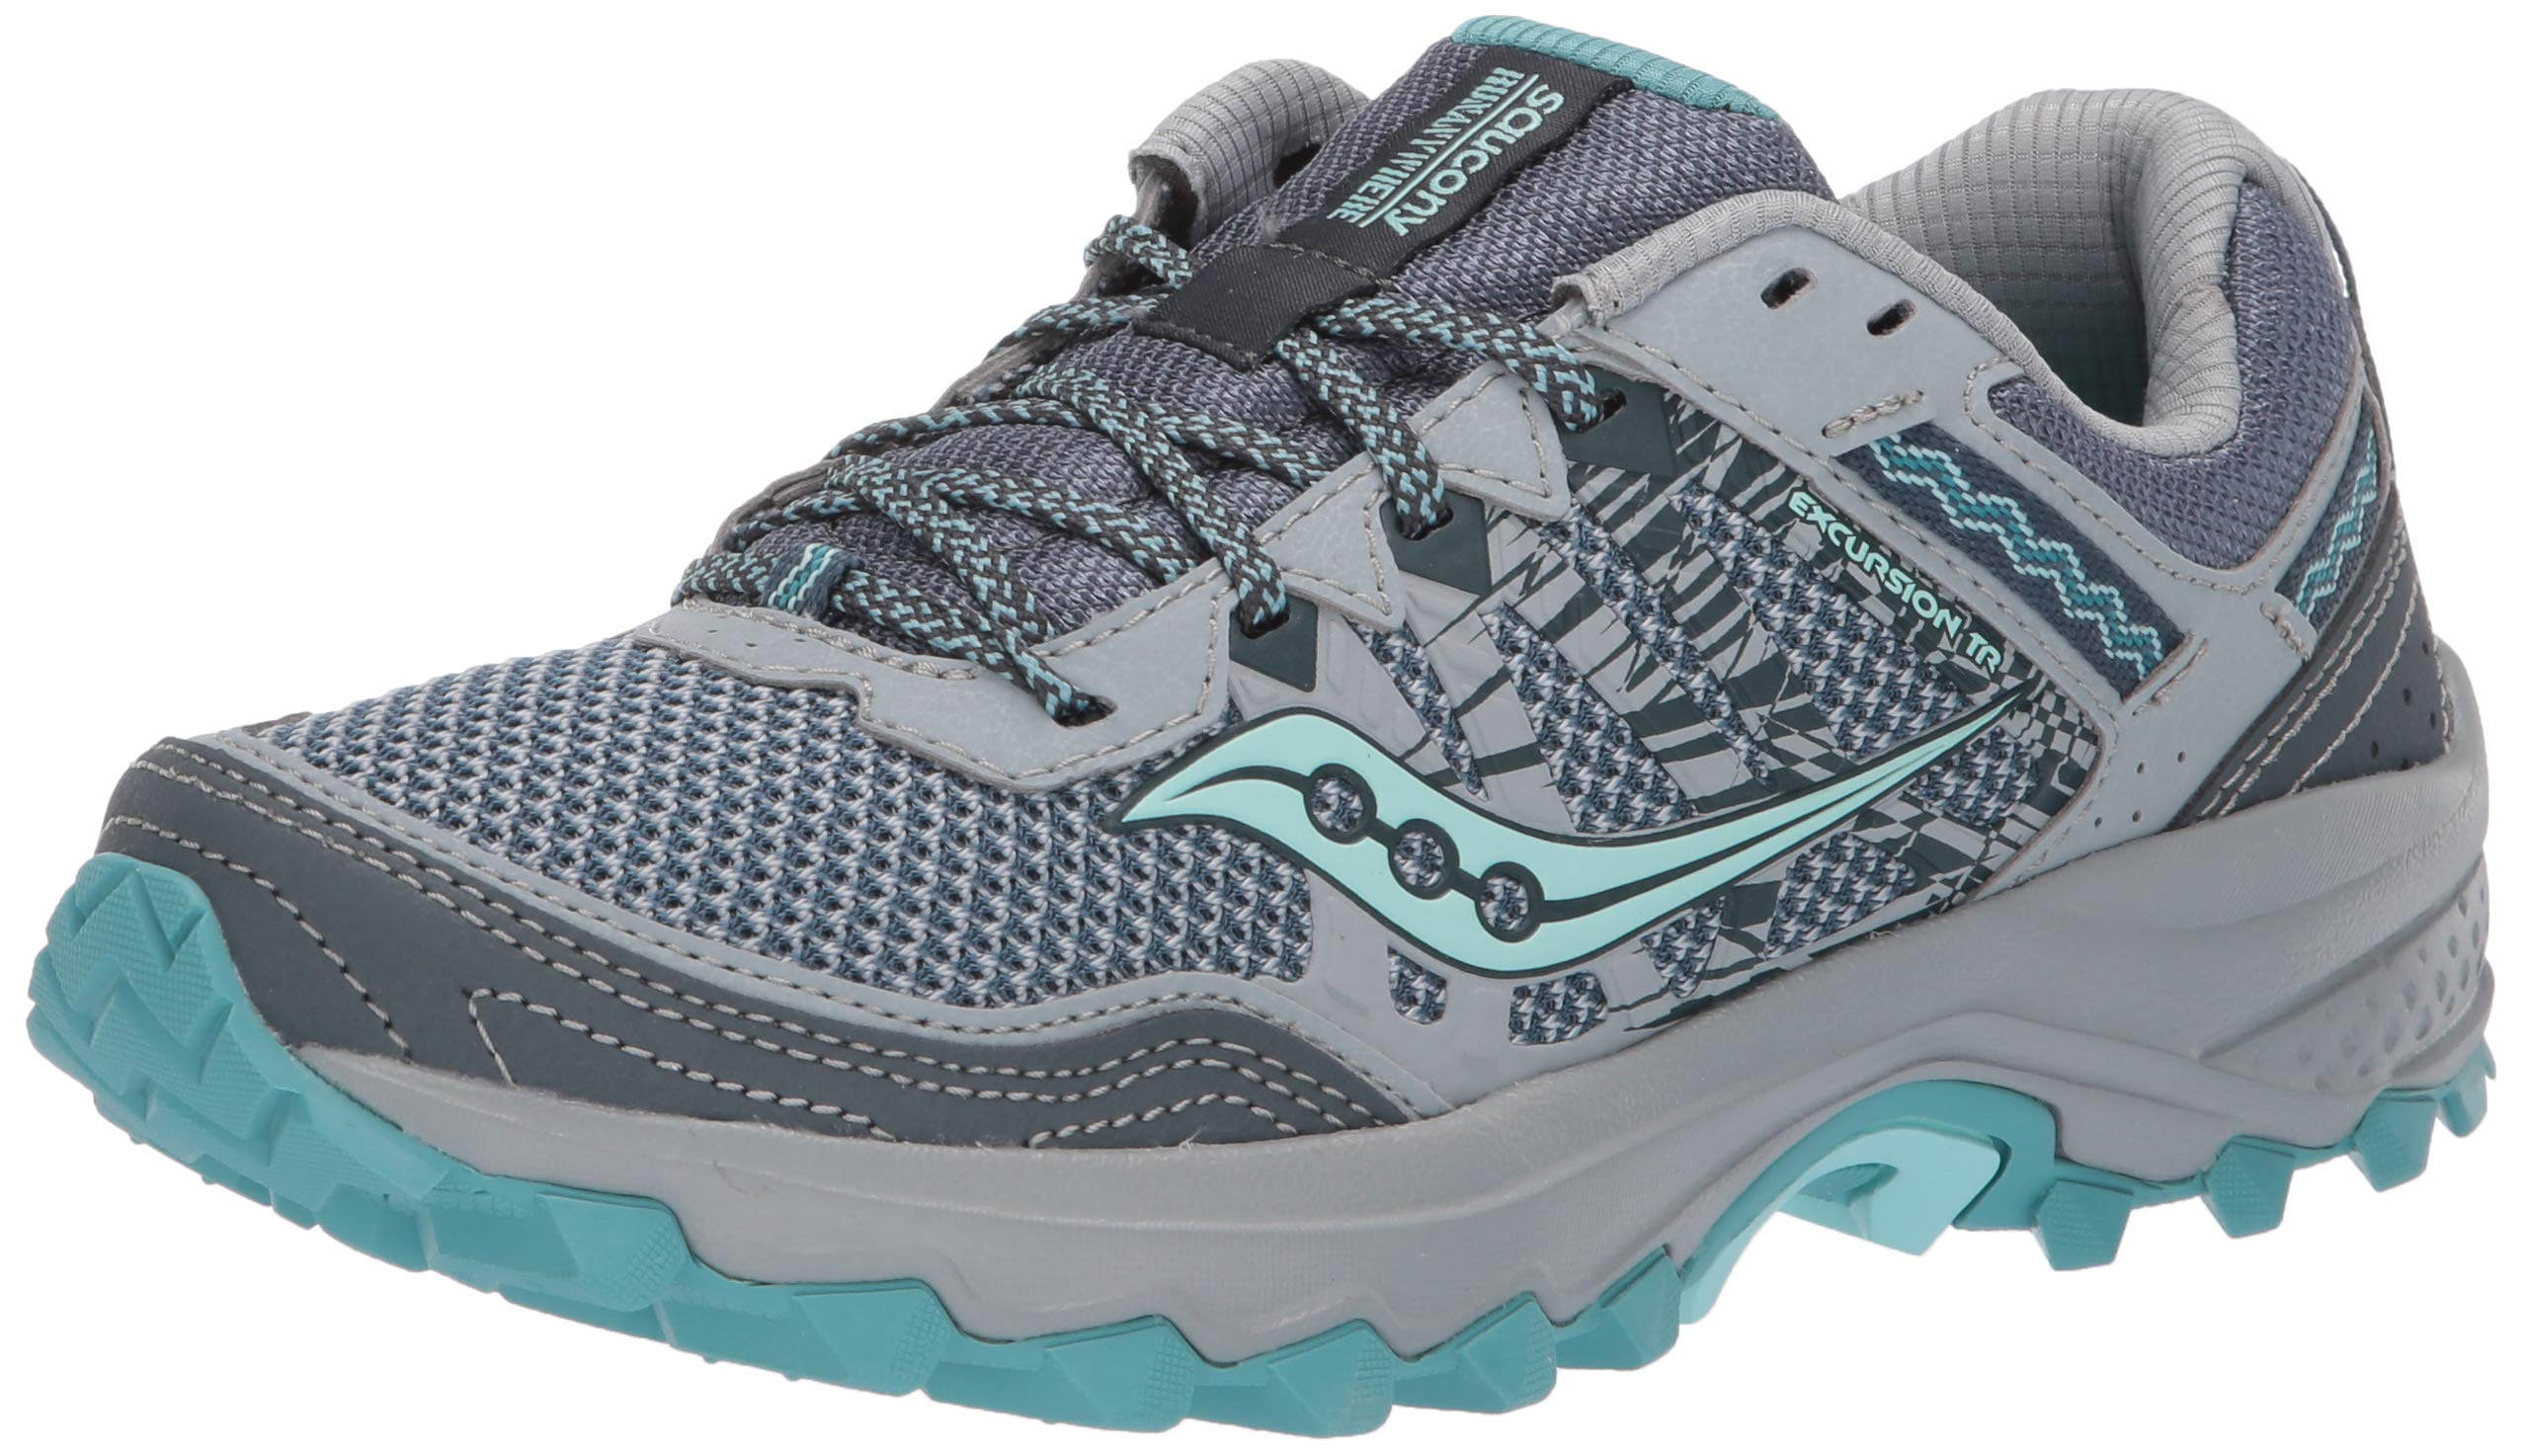 Saucony Women's Grid Excursion TR12 Trail Running Shoe Grey/Teal 5.5 M US